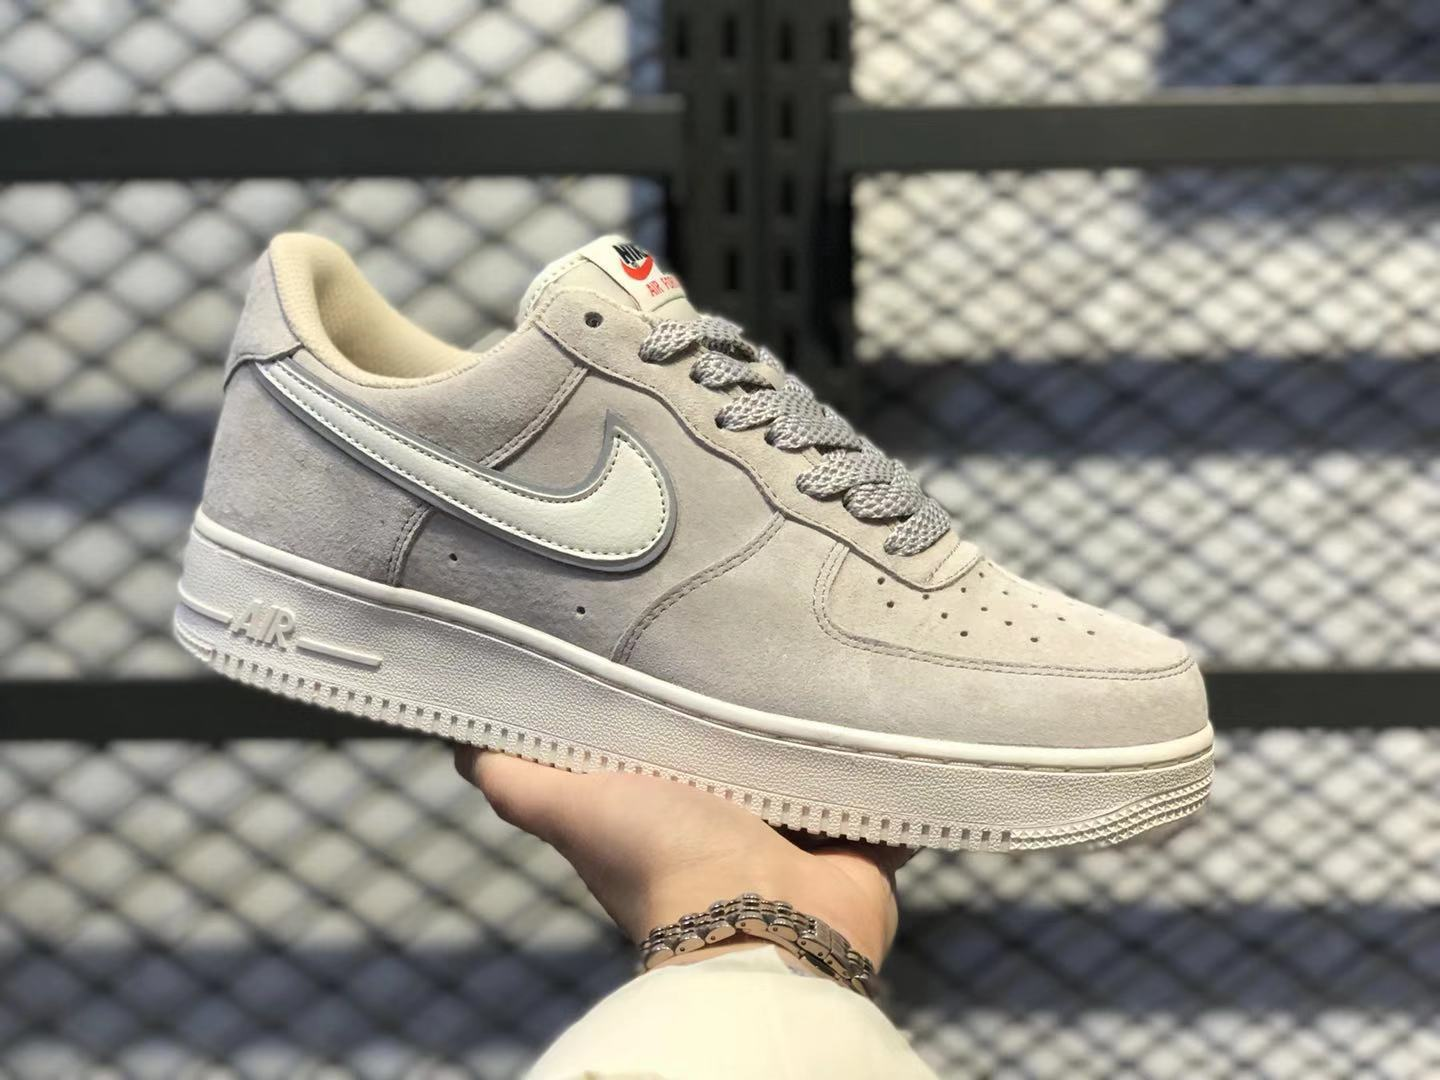 Nike Air Force 1'07 PRM Moon Particle/Sepia Stone Suede Shoes Online Buy